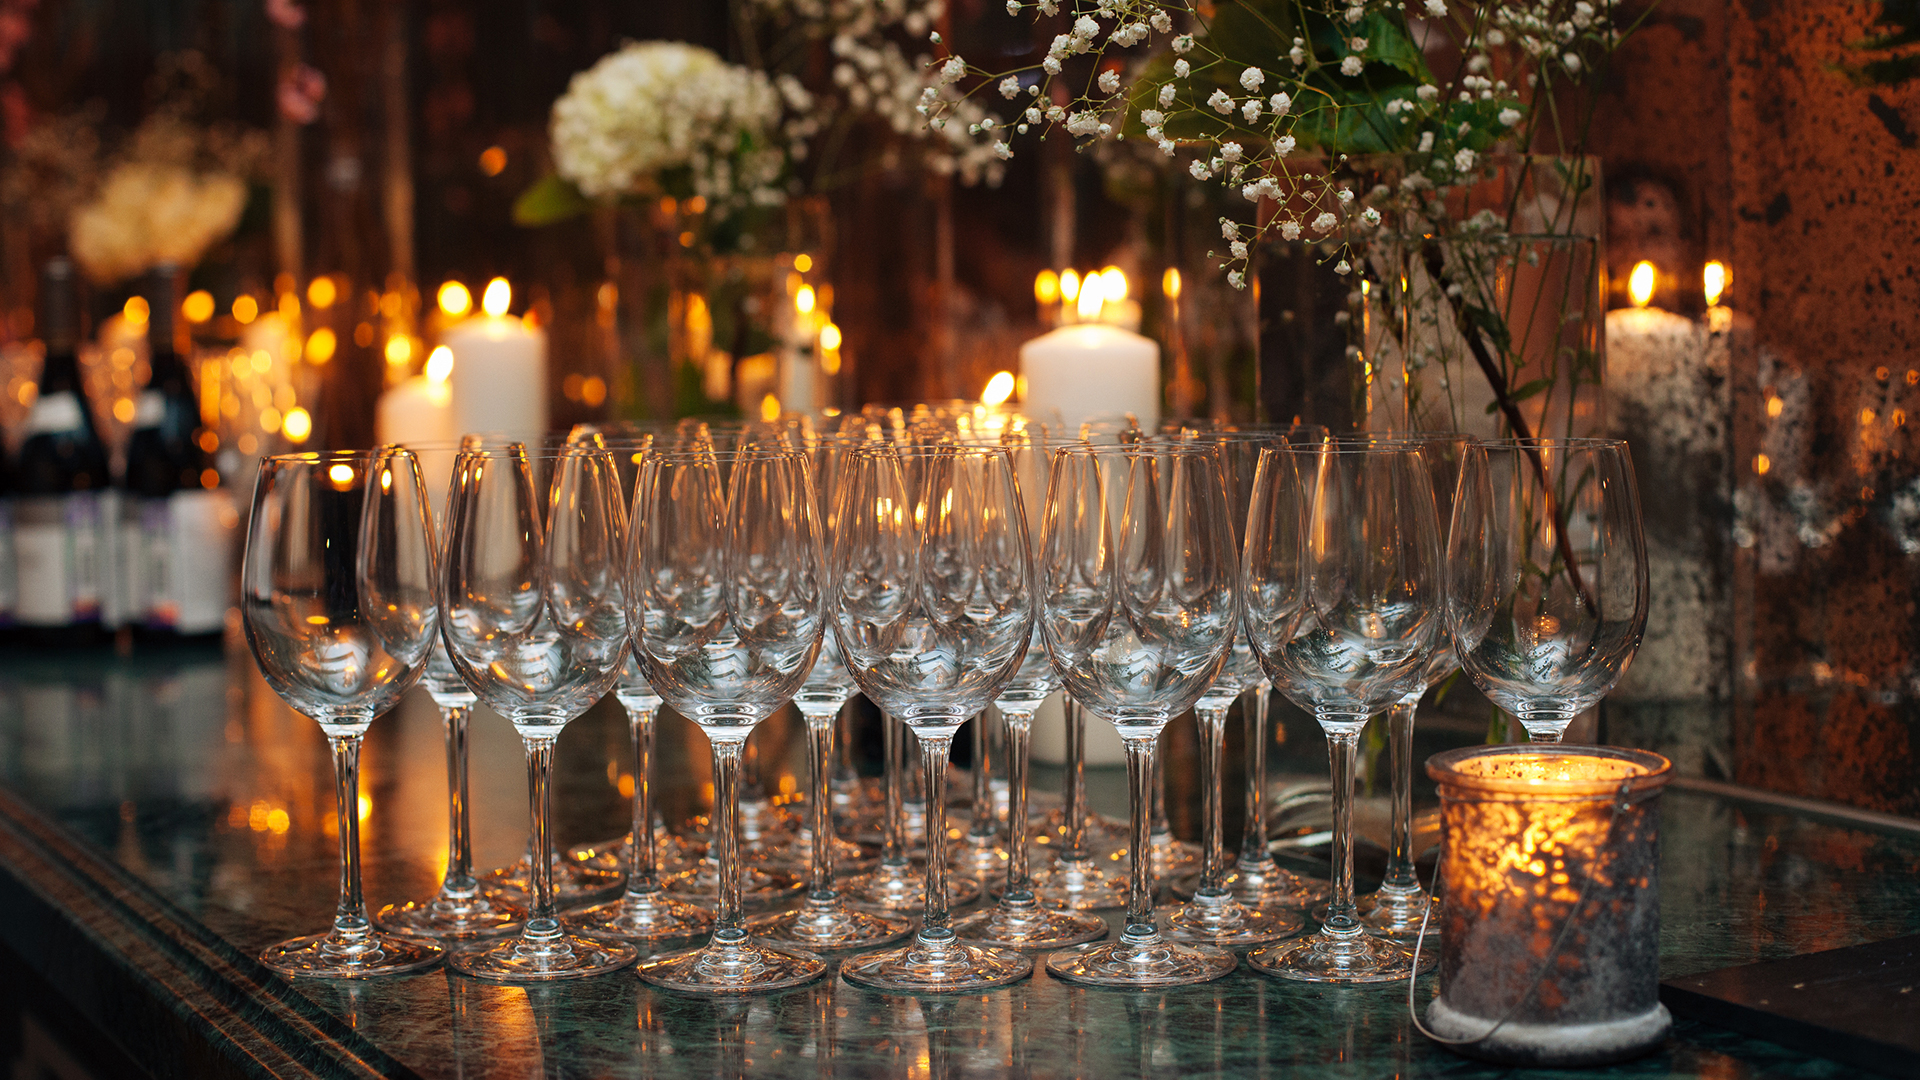 Photo of champagne glasses at table setting